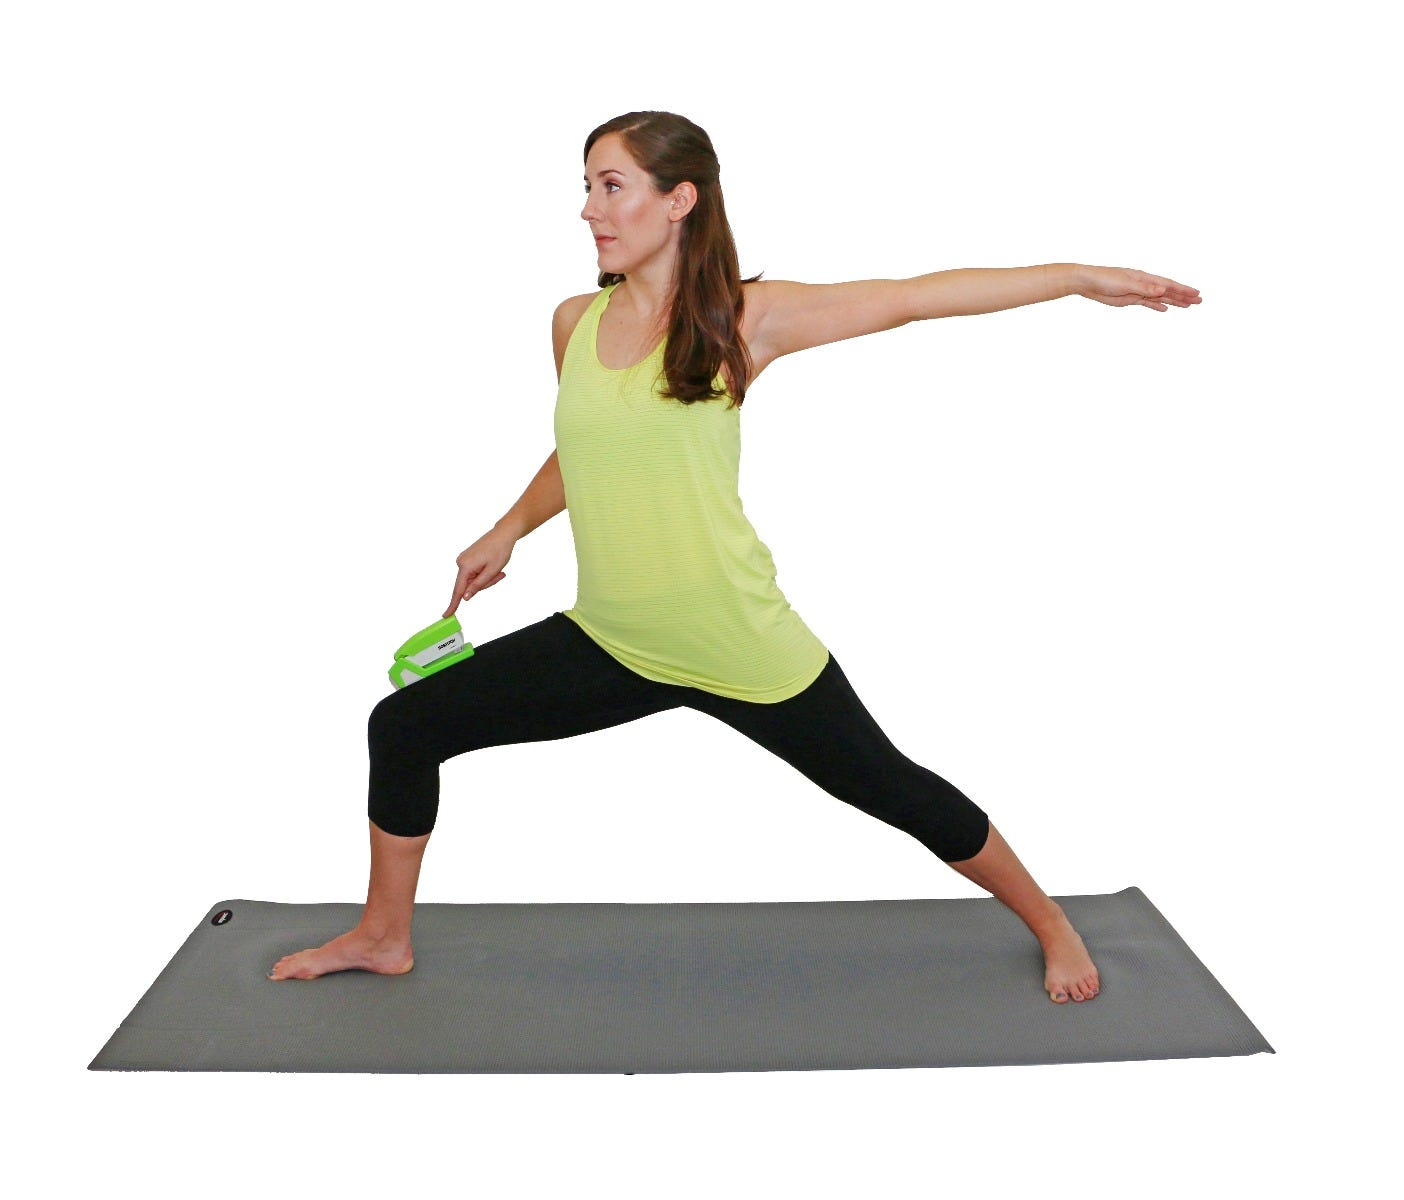 Yoga Pose of the Month - May